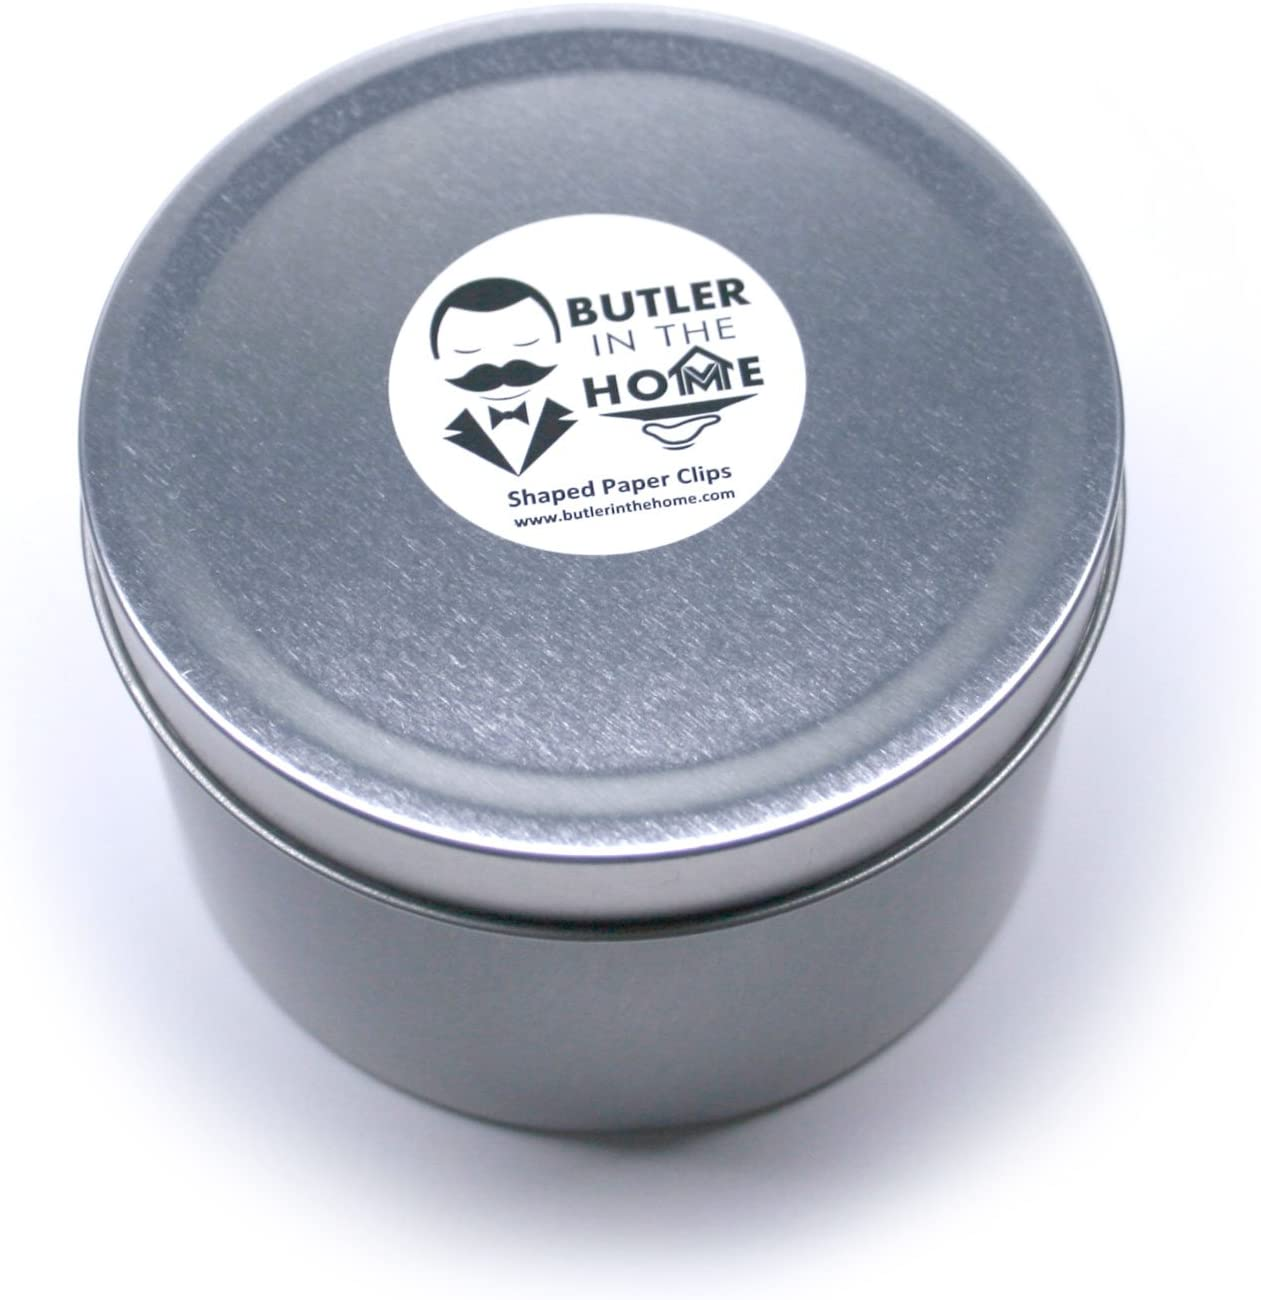 Comes in Round Tin with Lid and Gift Box White Butler in the Home 100 Count Cloud Shaped Paper Clips Great for Paper Clip Collectors or Office Gift